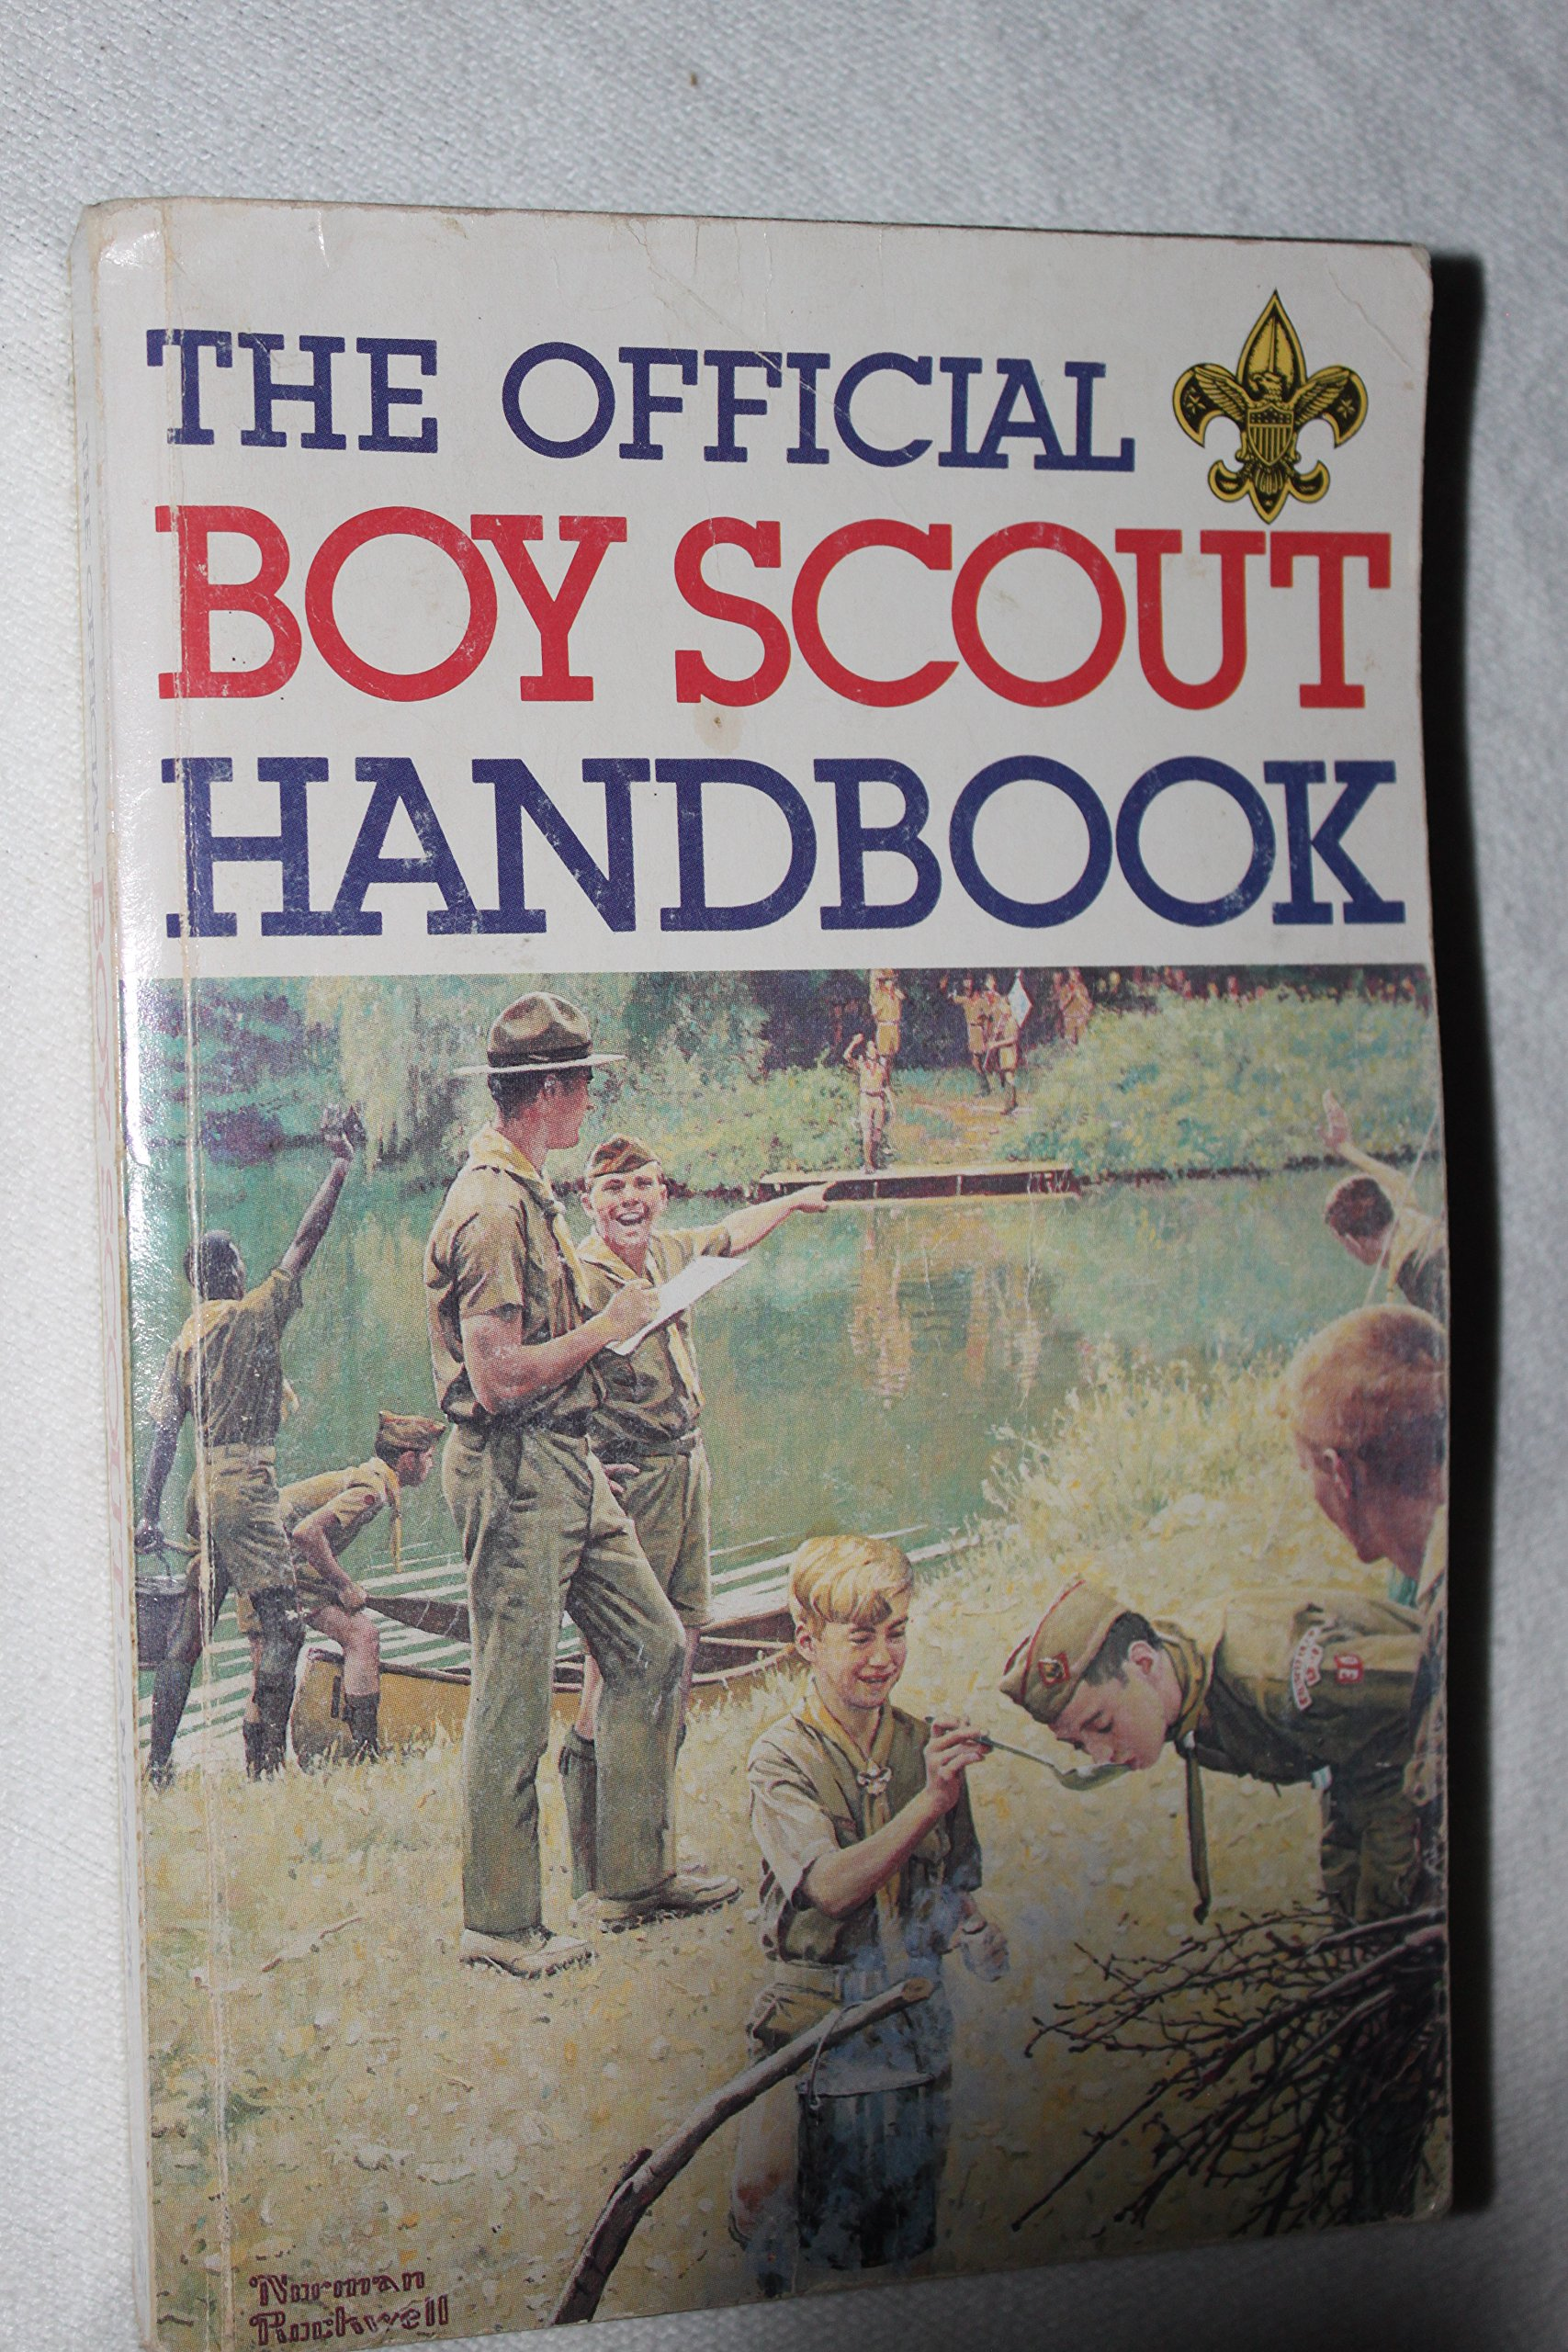 Official boy scout handbook william hillcourt norman rockwell official boy scout handbook william hillcourt norman rockwell 9780839532279 amazon books fandeluxe